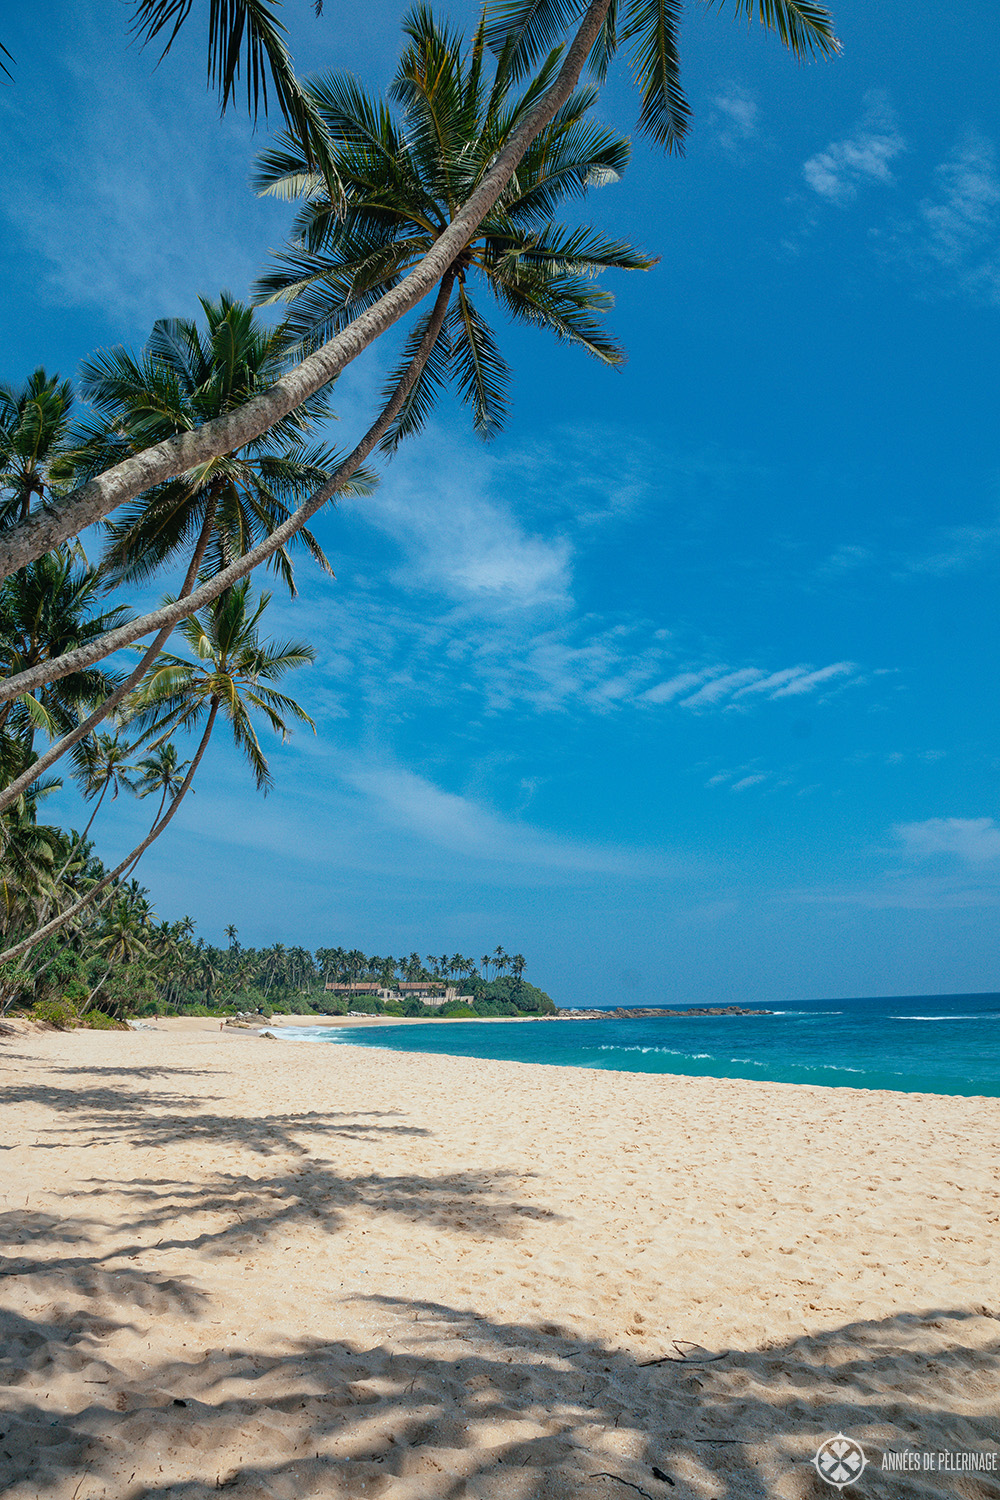 The coconut grove at Amanwella - the best beach resort in Sri lanka, i guess